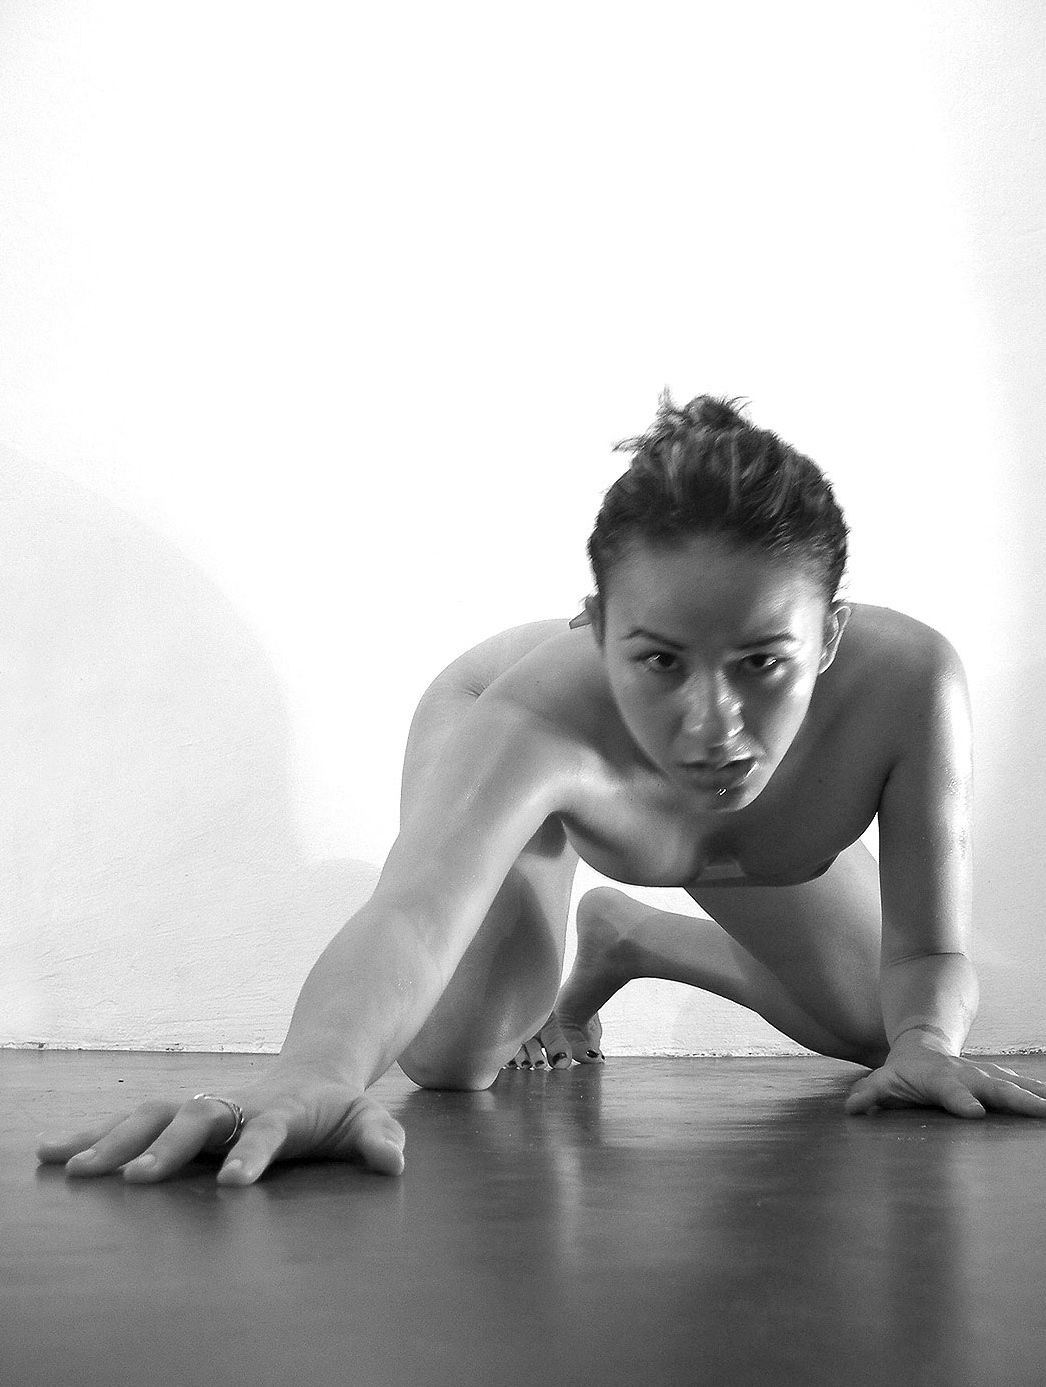 erotic-and-artistic-pictures-nude-australian-army-girl